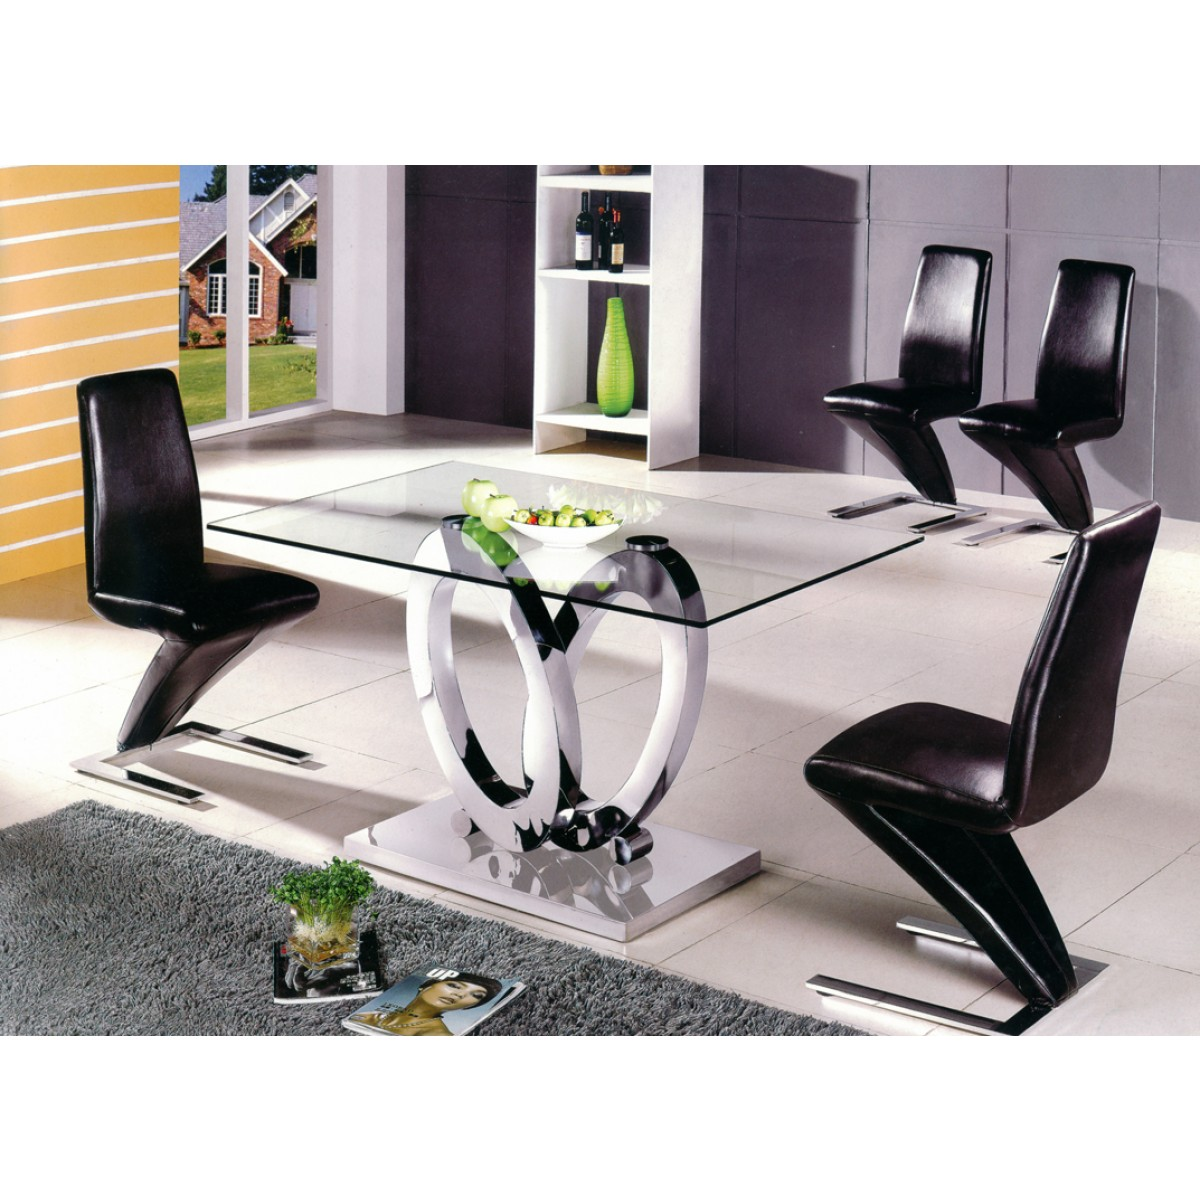 Table manger design ellipse taille au choix tables for Table salle manger design